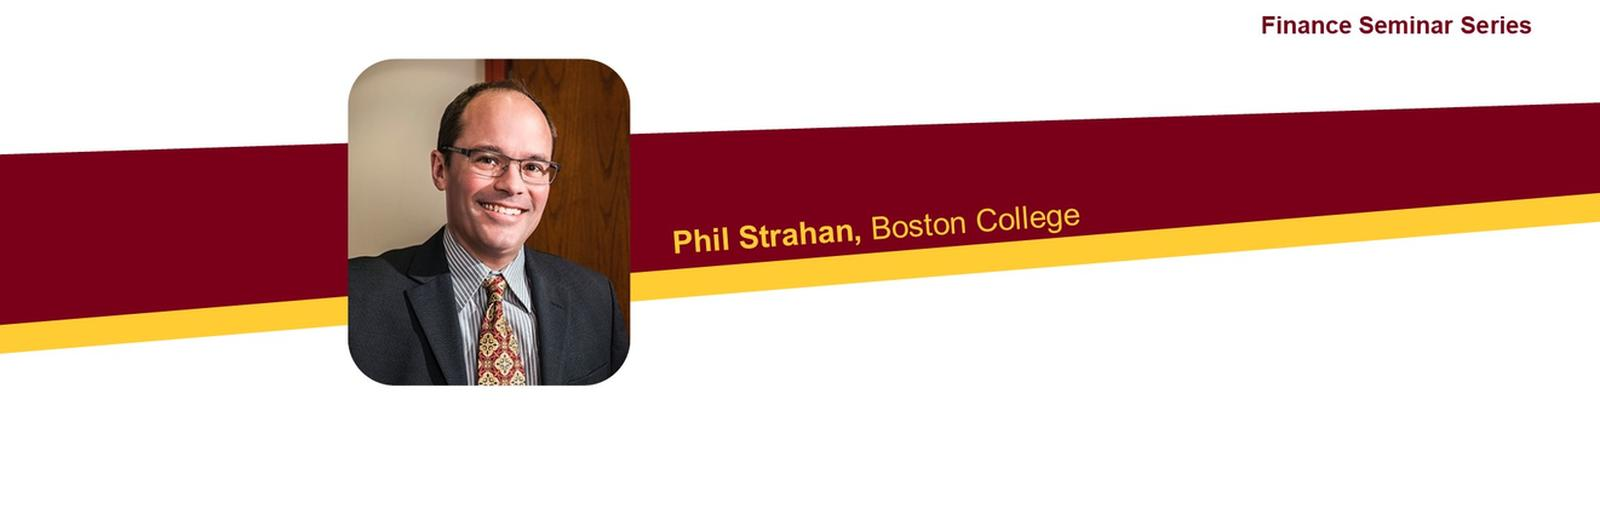 Photo of Philip Strahan with event text